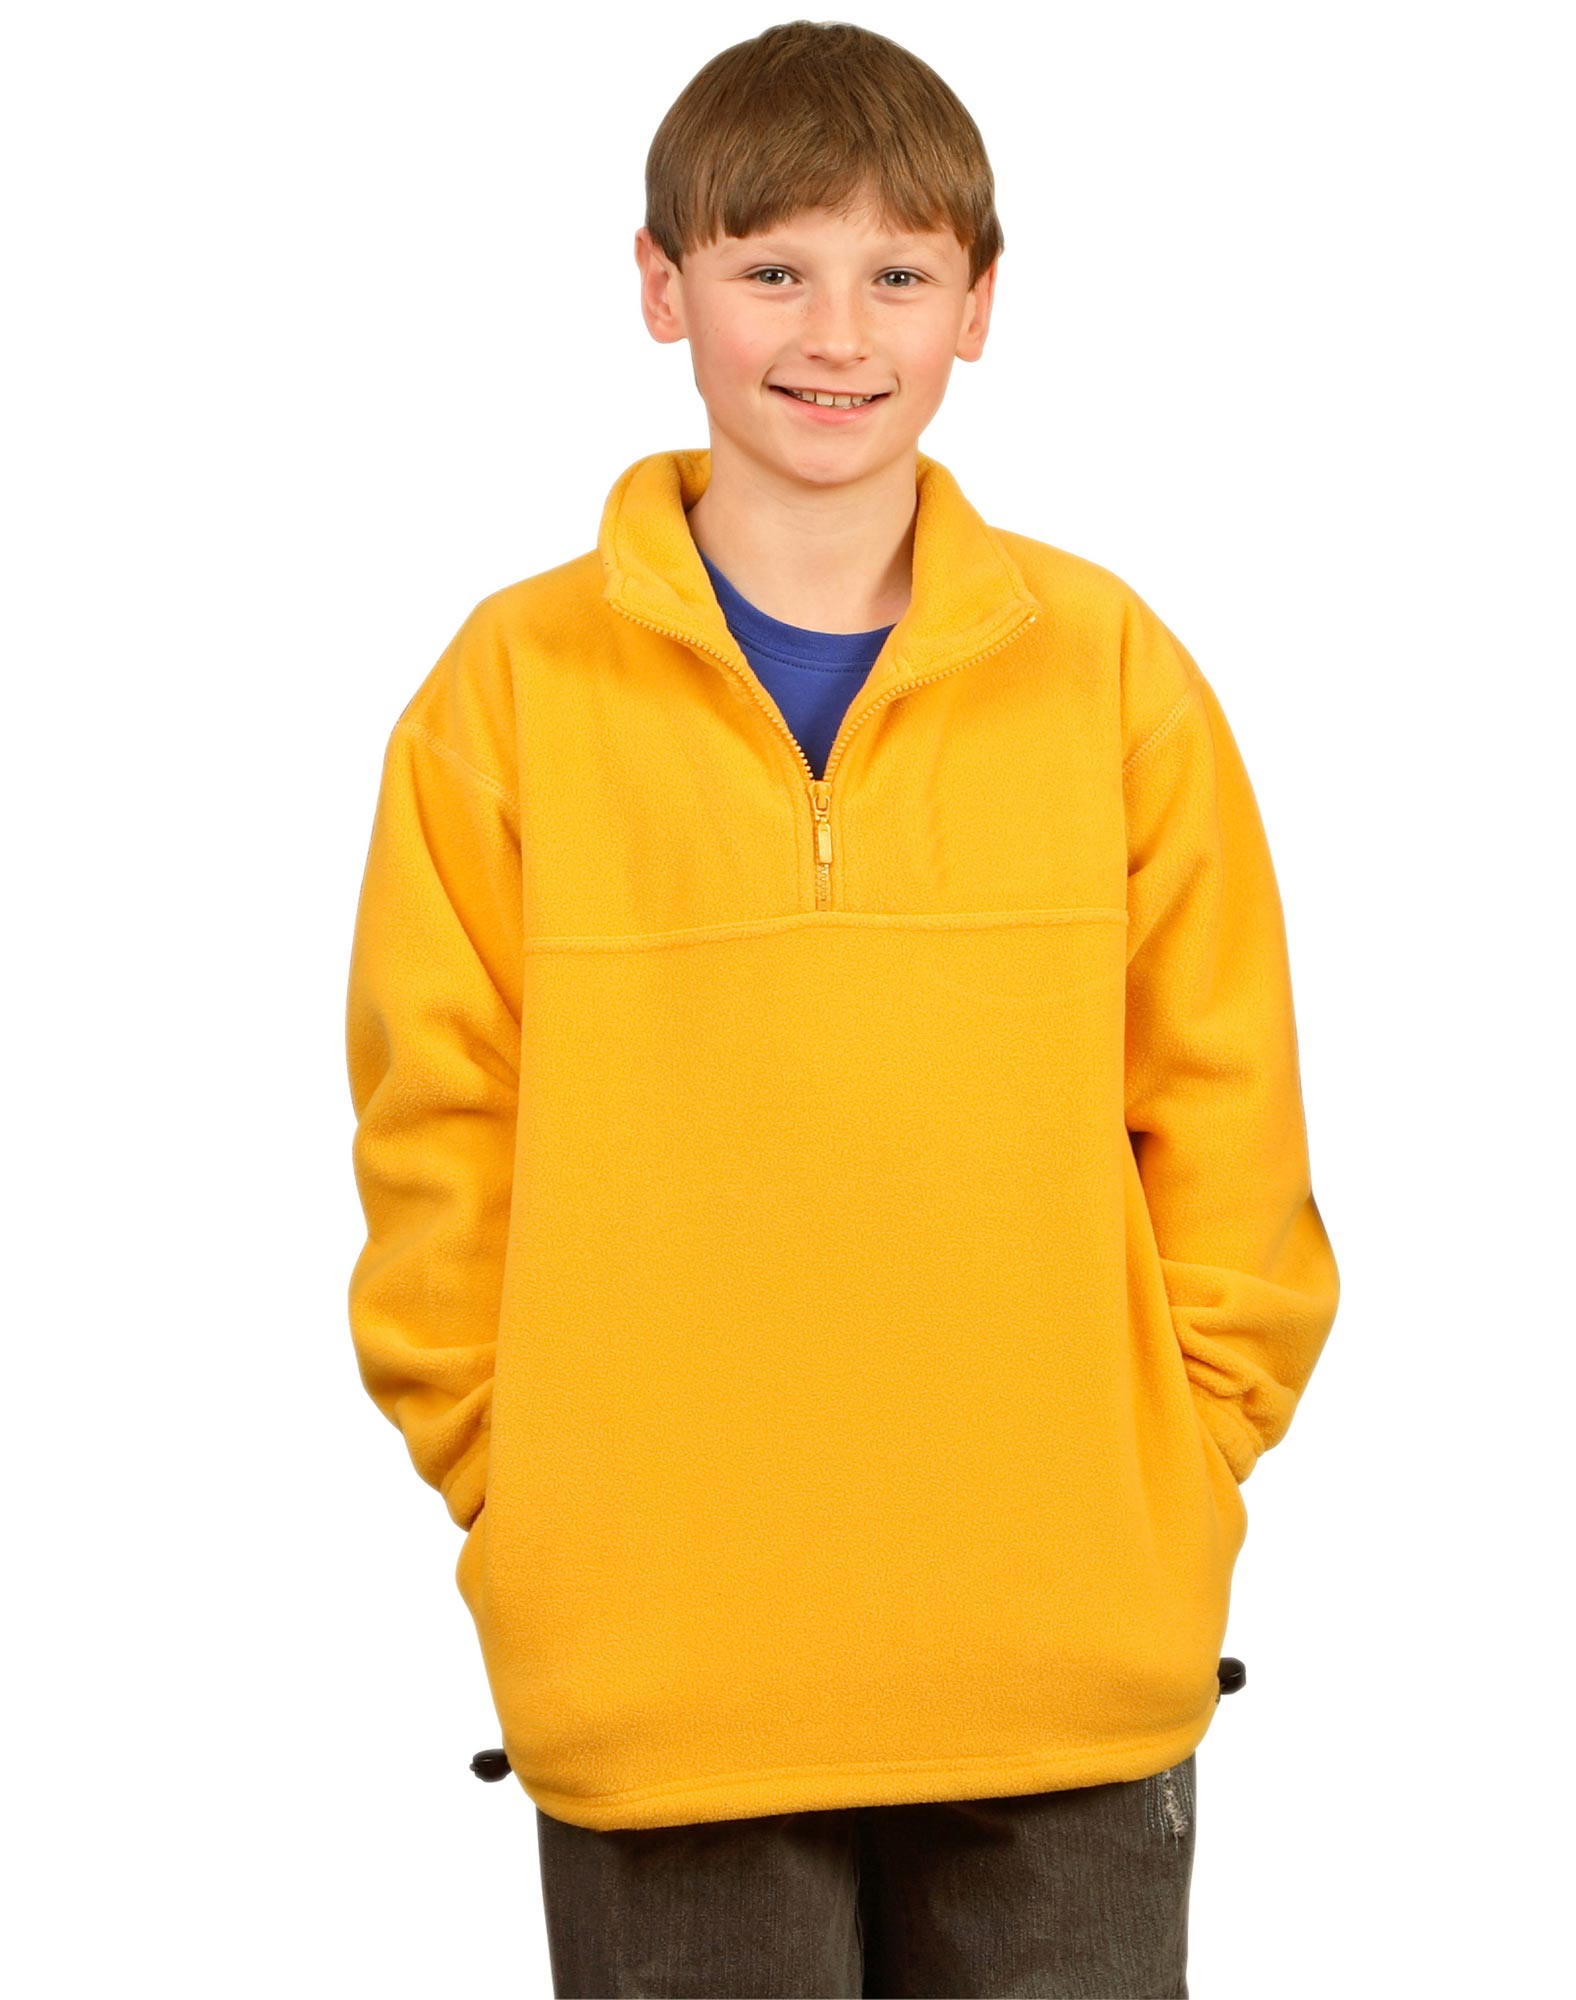 KIDS HALF ZIP POLAR FLEECE PULLOVER